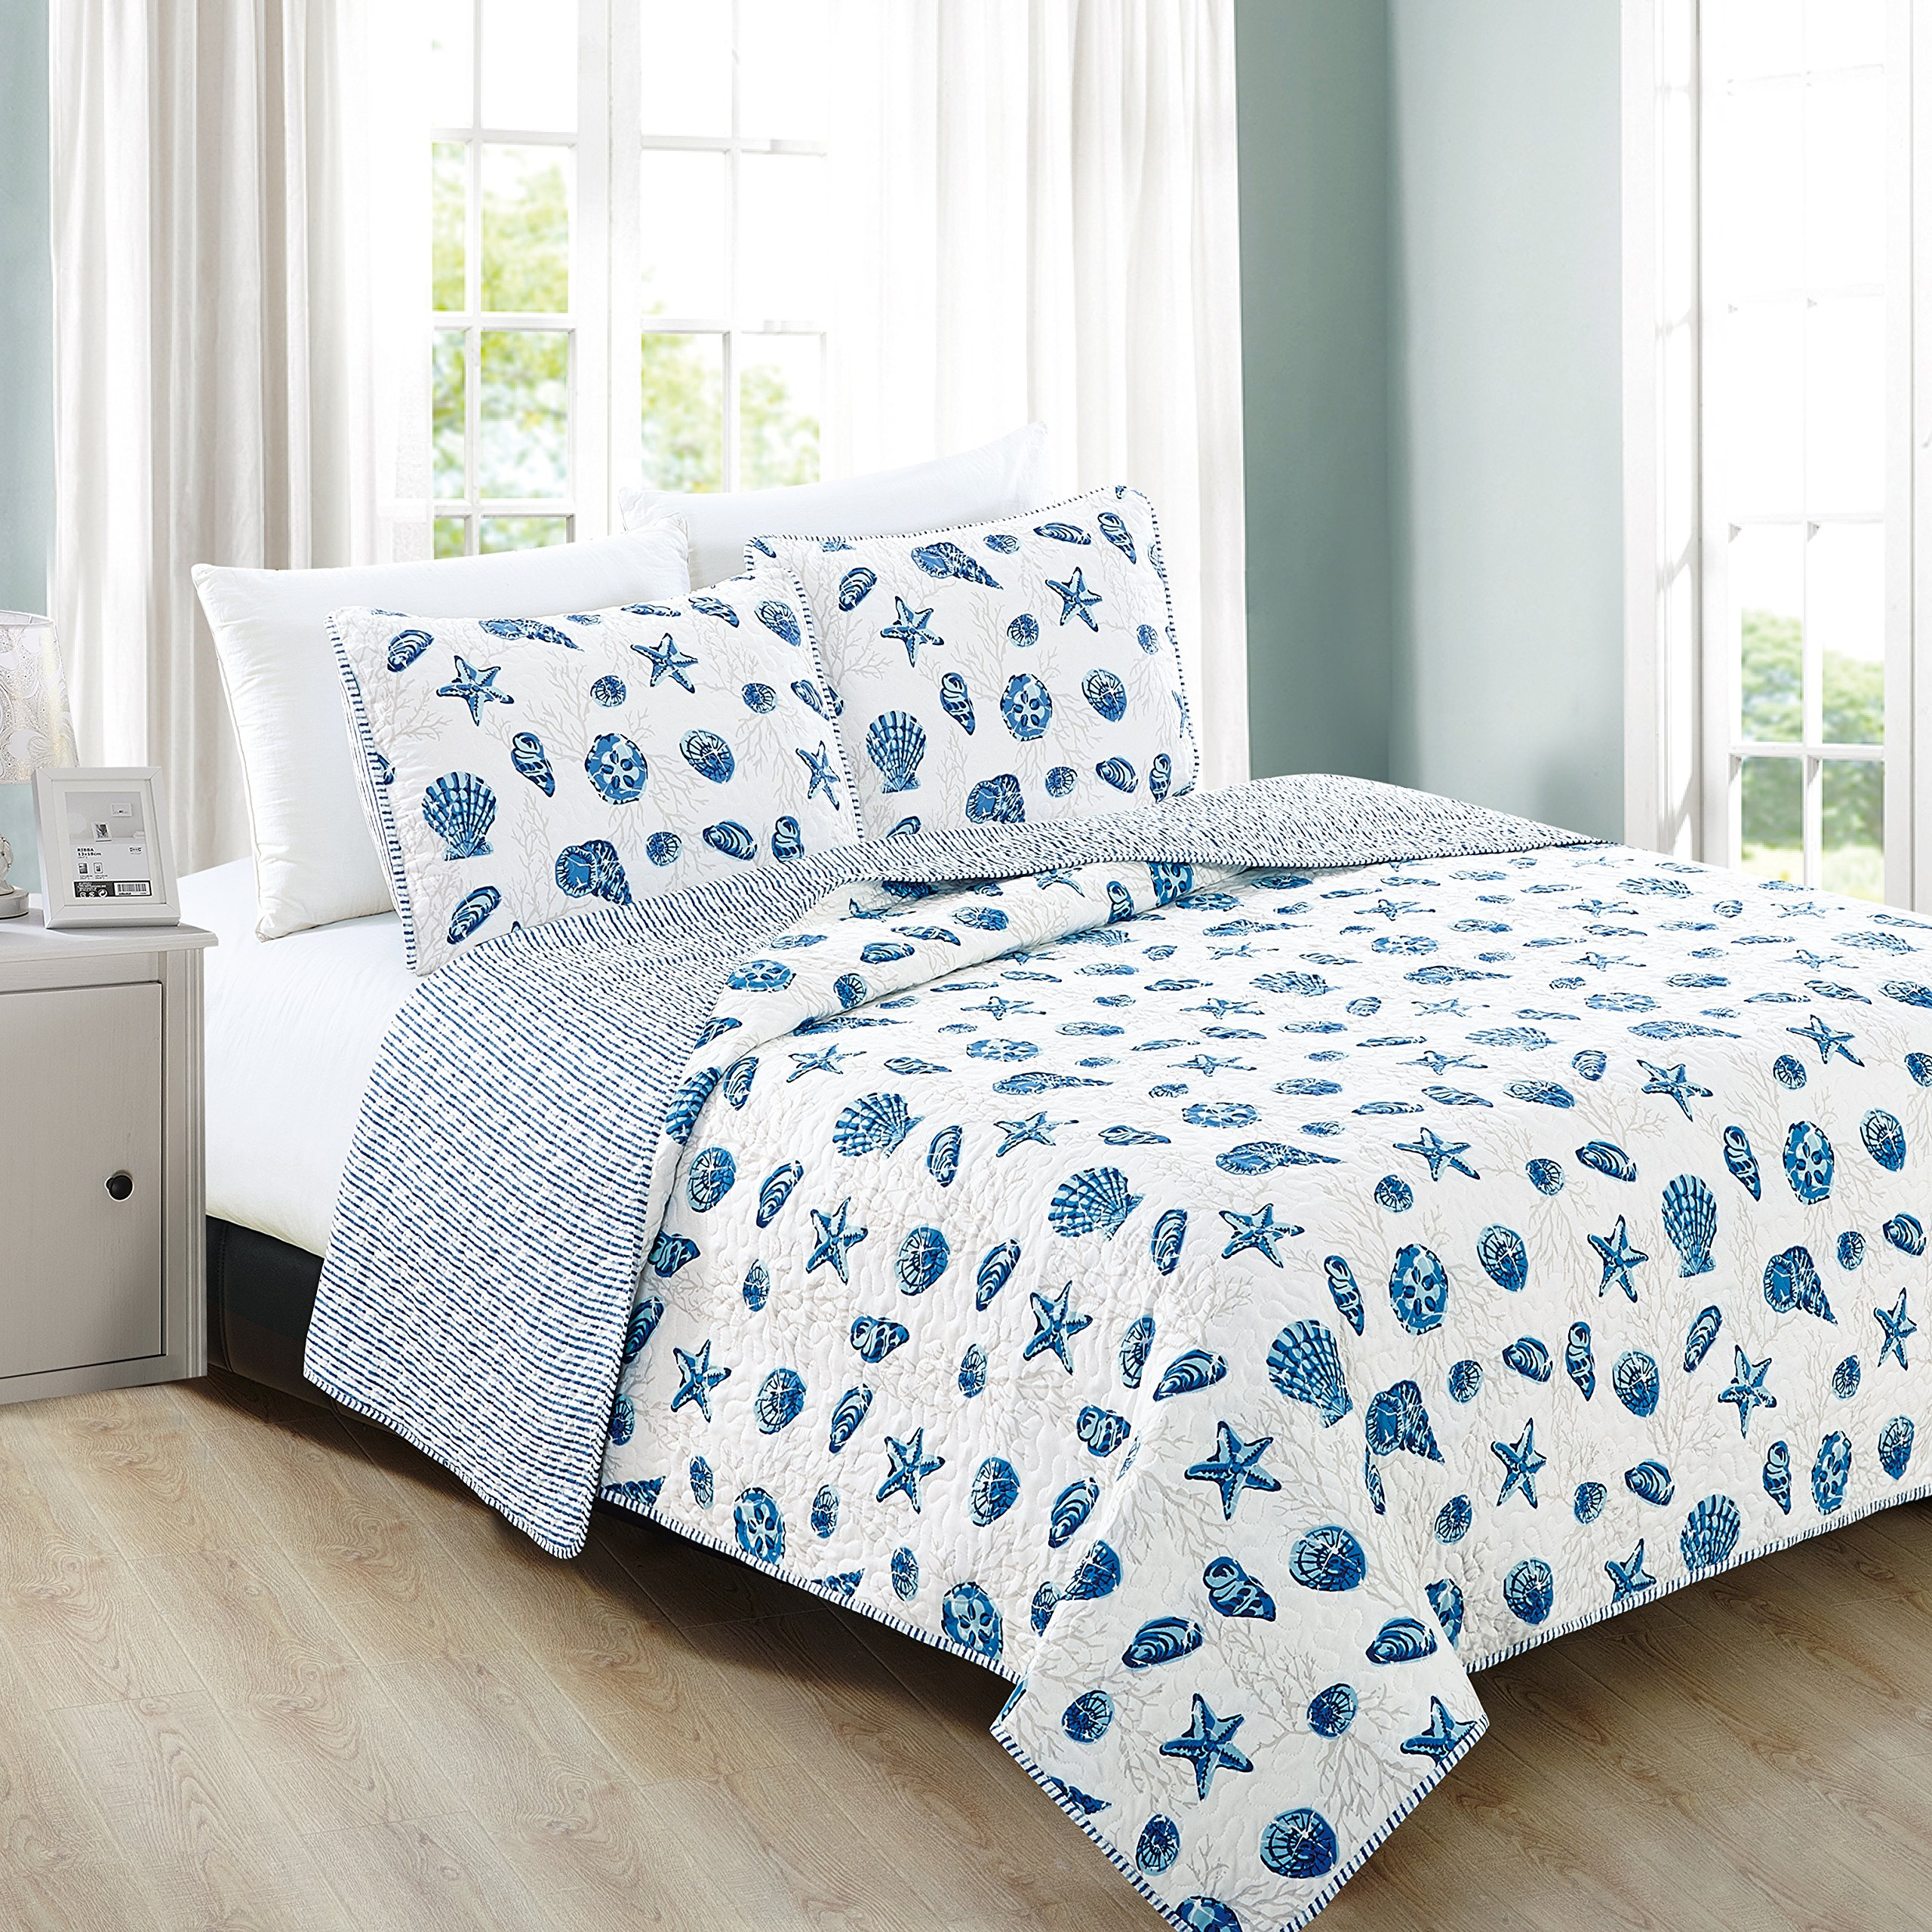 Home Fashion Designs 3-Piece Coastal Beach Theme Quilt Set with Shams. Soft All-Season Luxury Microfiber Reversible Bedspread and Coverlet. Bali Collection By Brand. (Full/Queen, Blue)